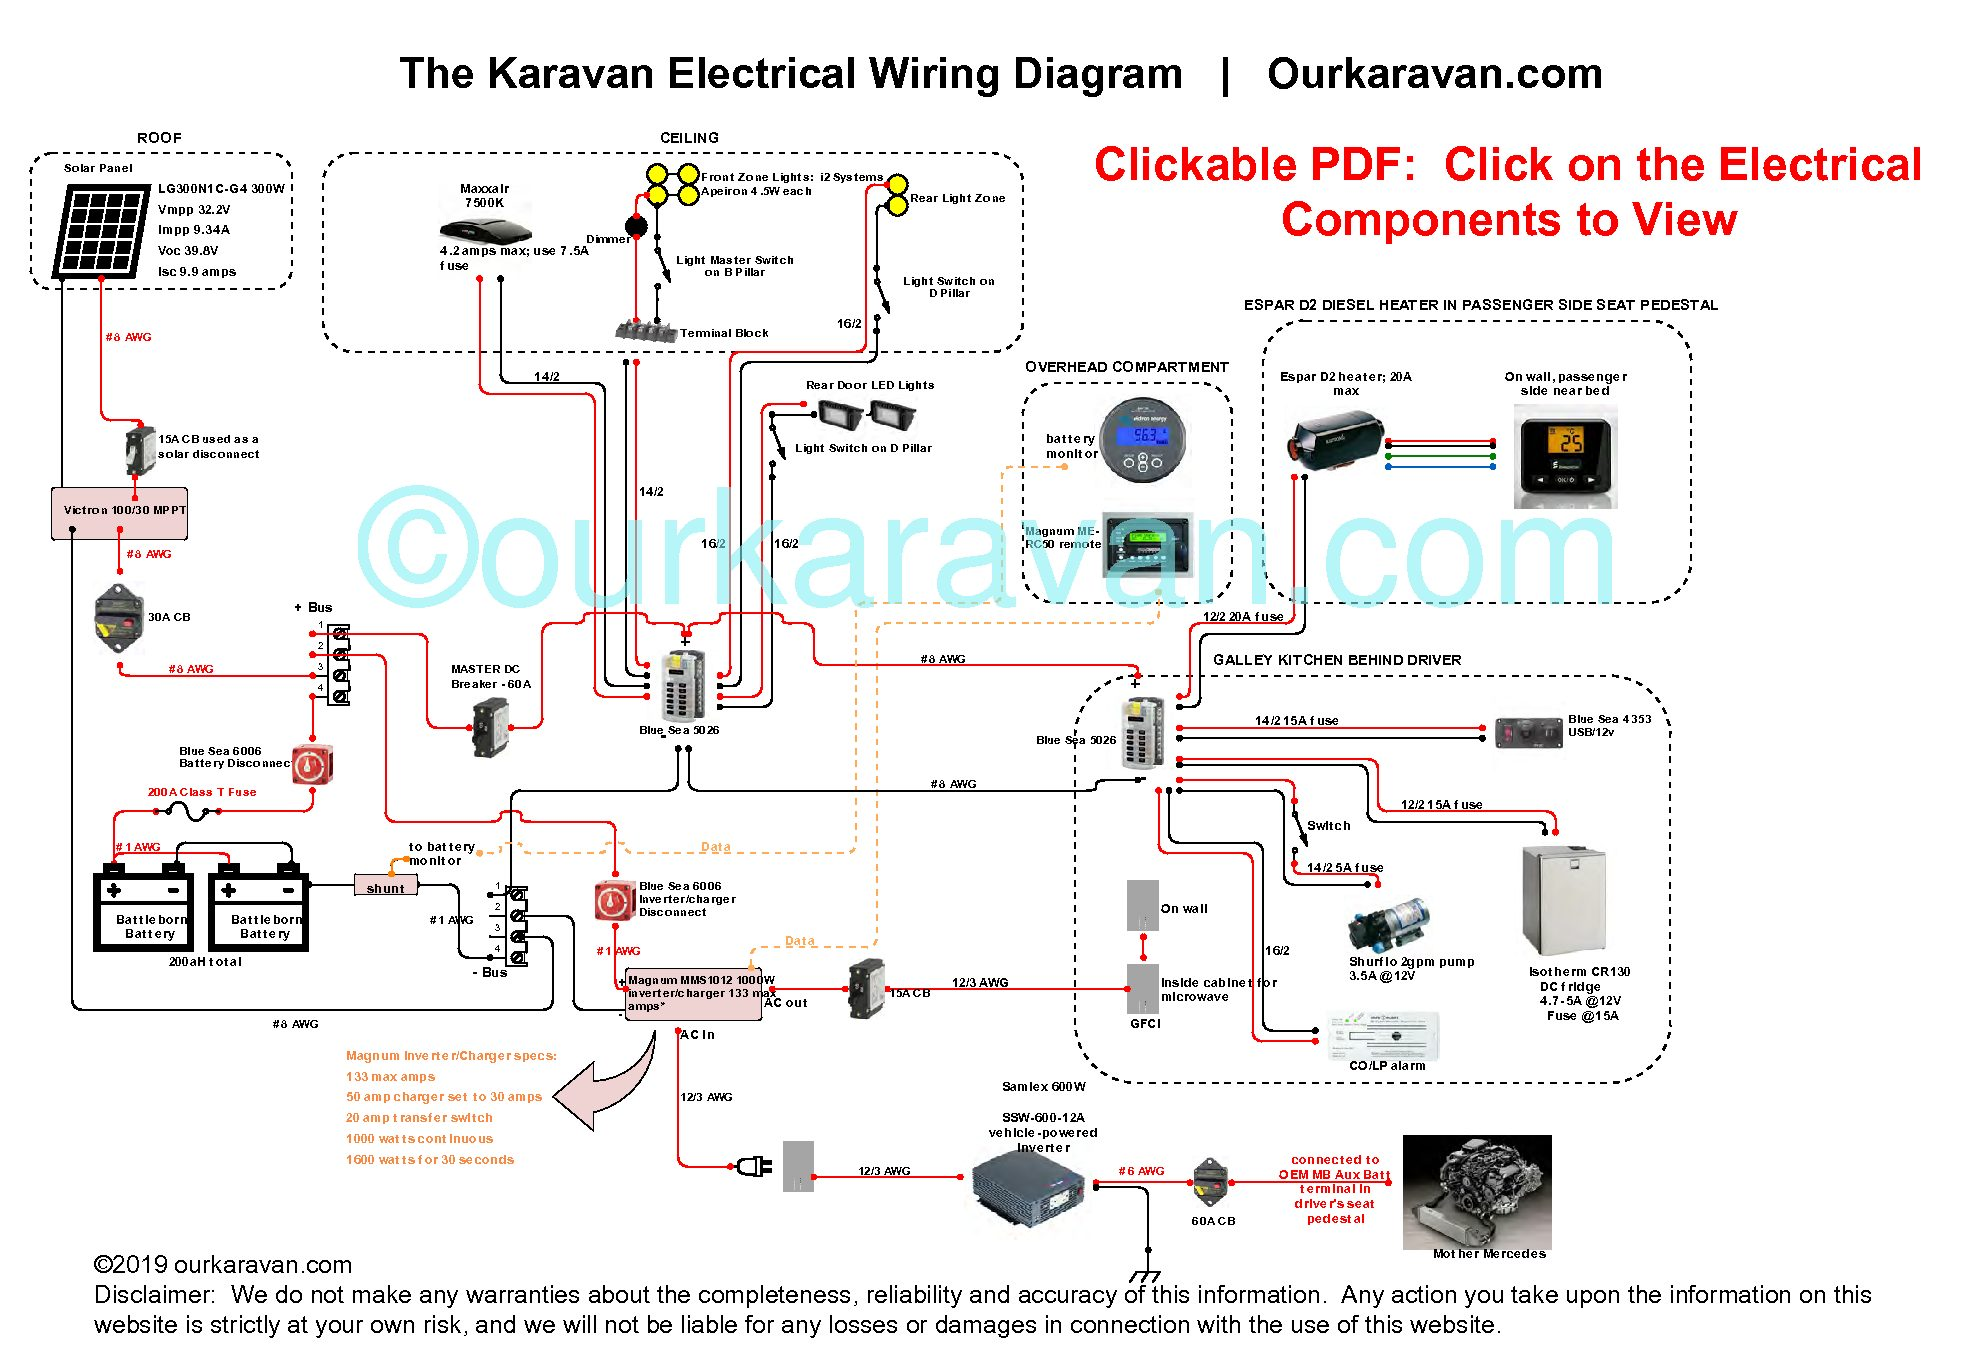 Look At The Basic House Wiring Diagram For Low Voltage Wiring Which